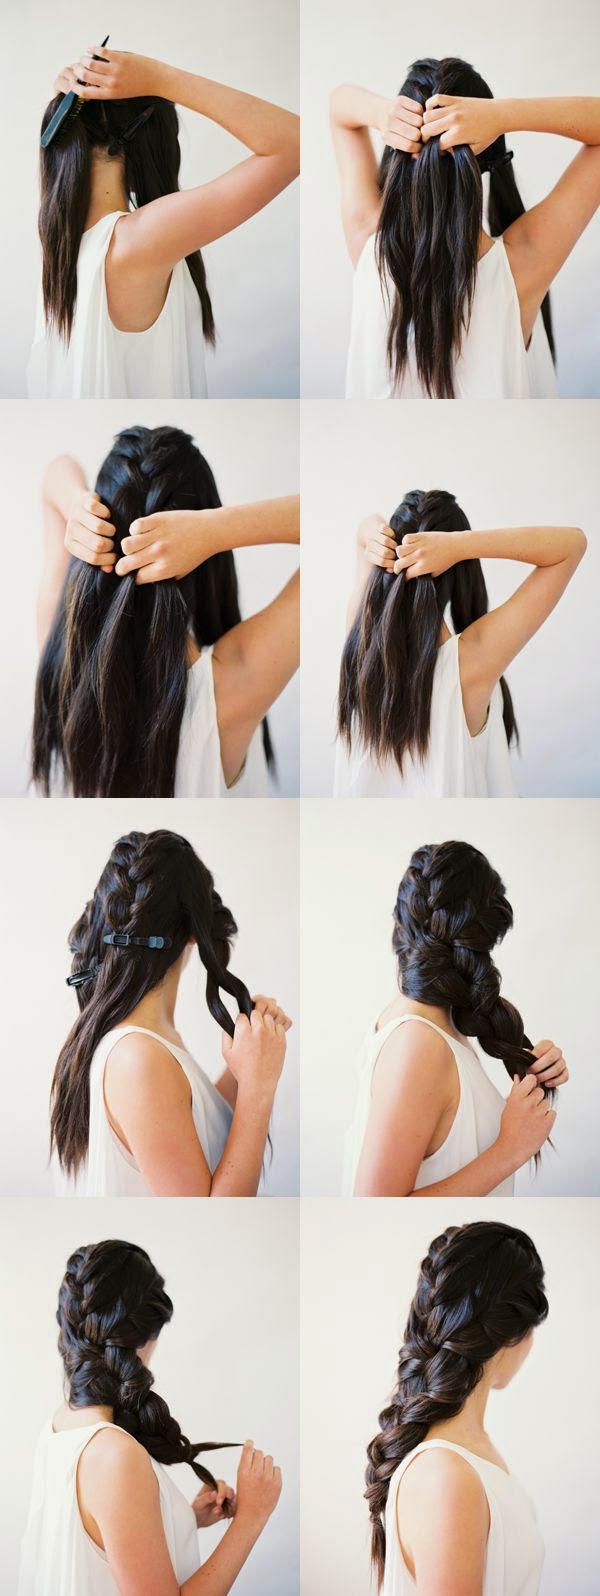 Hairstyles Tutorials...